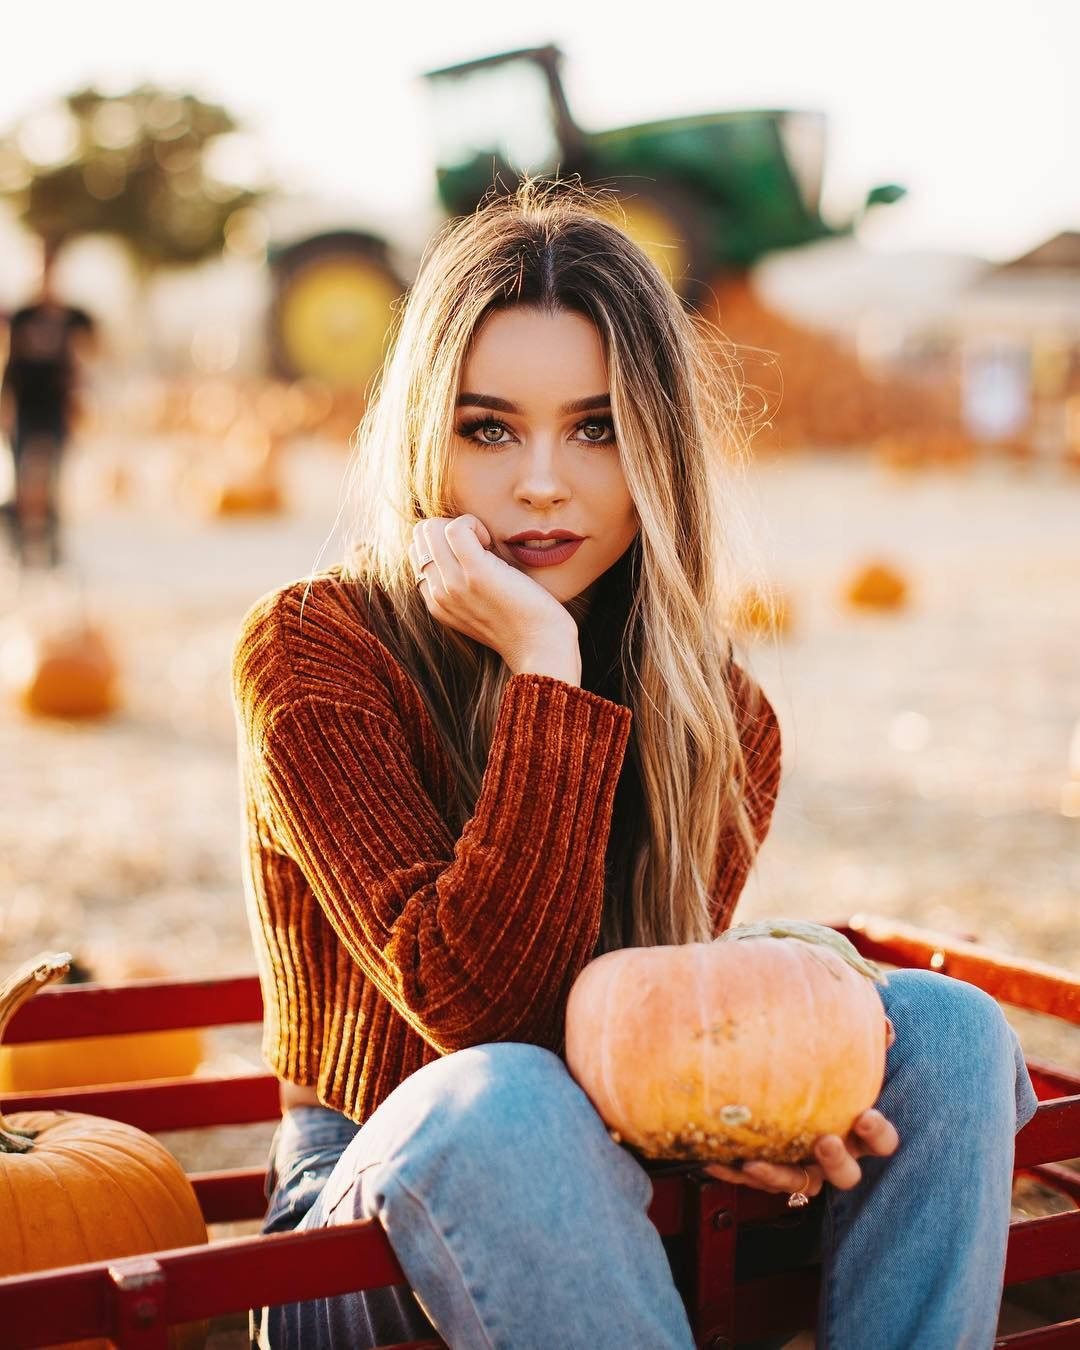 Beautiful Female Portrait Photography By Andre Nguyen #pumpkinpatch